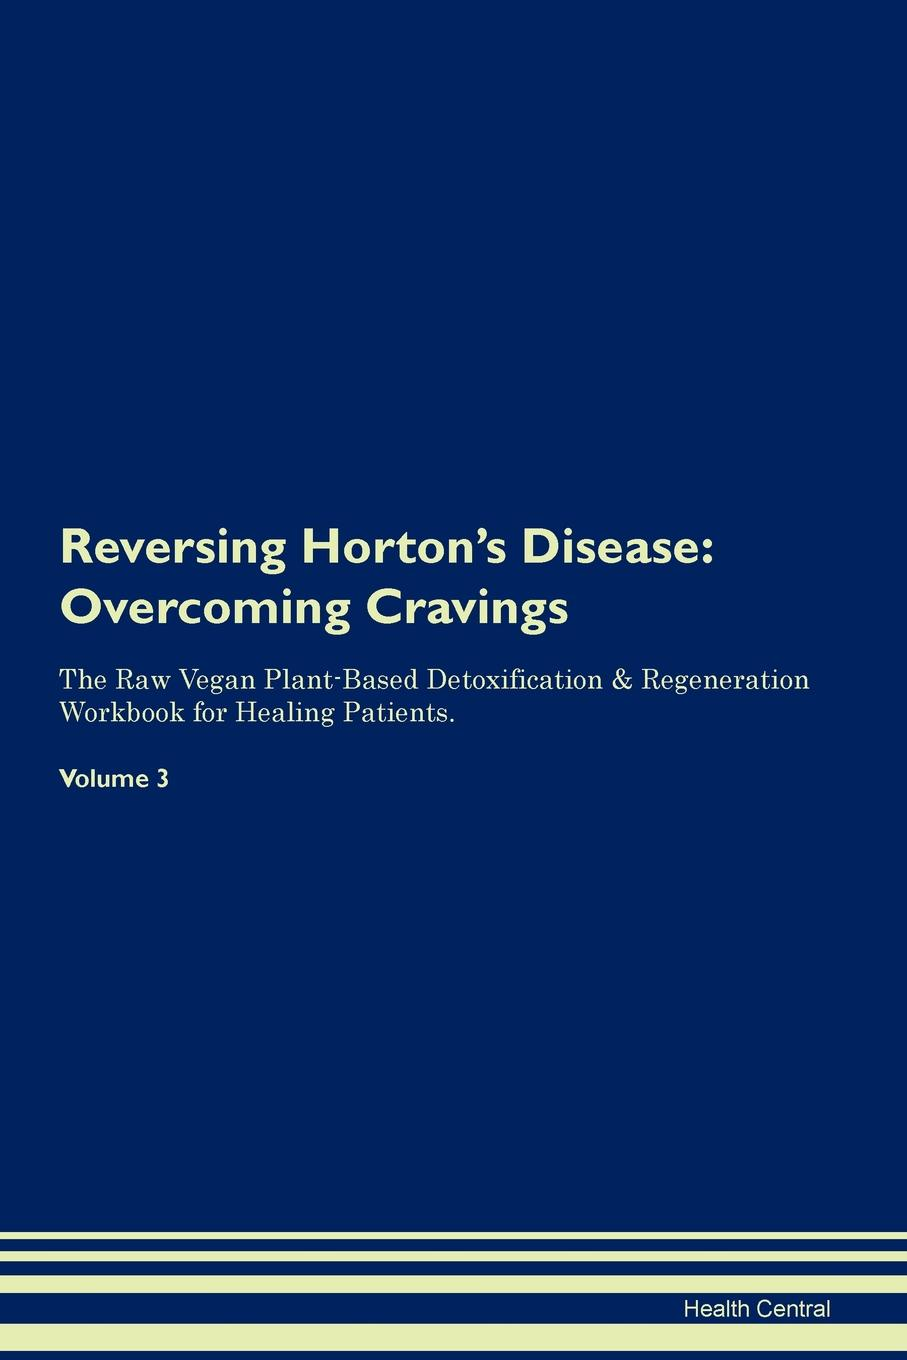 Фото - Health Central Reversing Horton's Disease. Overcoming Cravings The Raw Vegan Plant-Based Detoxification & Regeneration Workbook for Healing Patients. Volume 3 health central reversing extramammary paget s disease overcoming cravings the raw vegan plant based detoxification regeneration workbook for healing patients volume 3